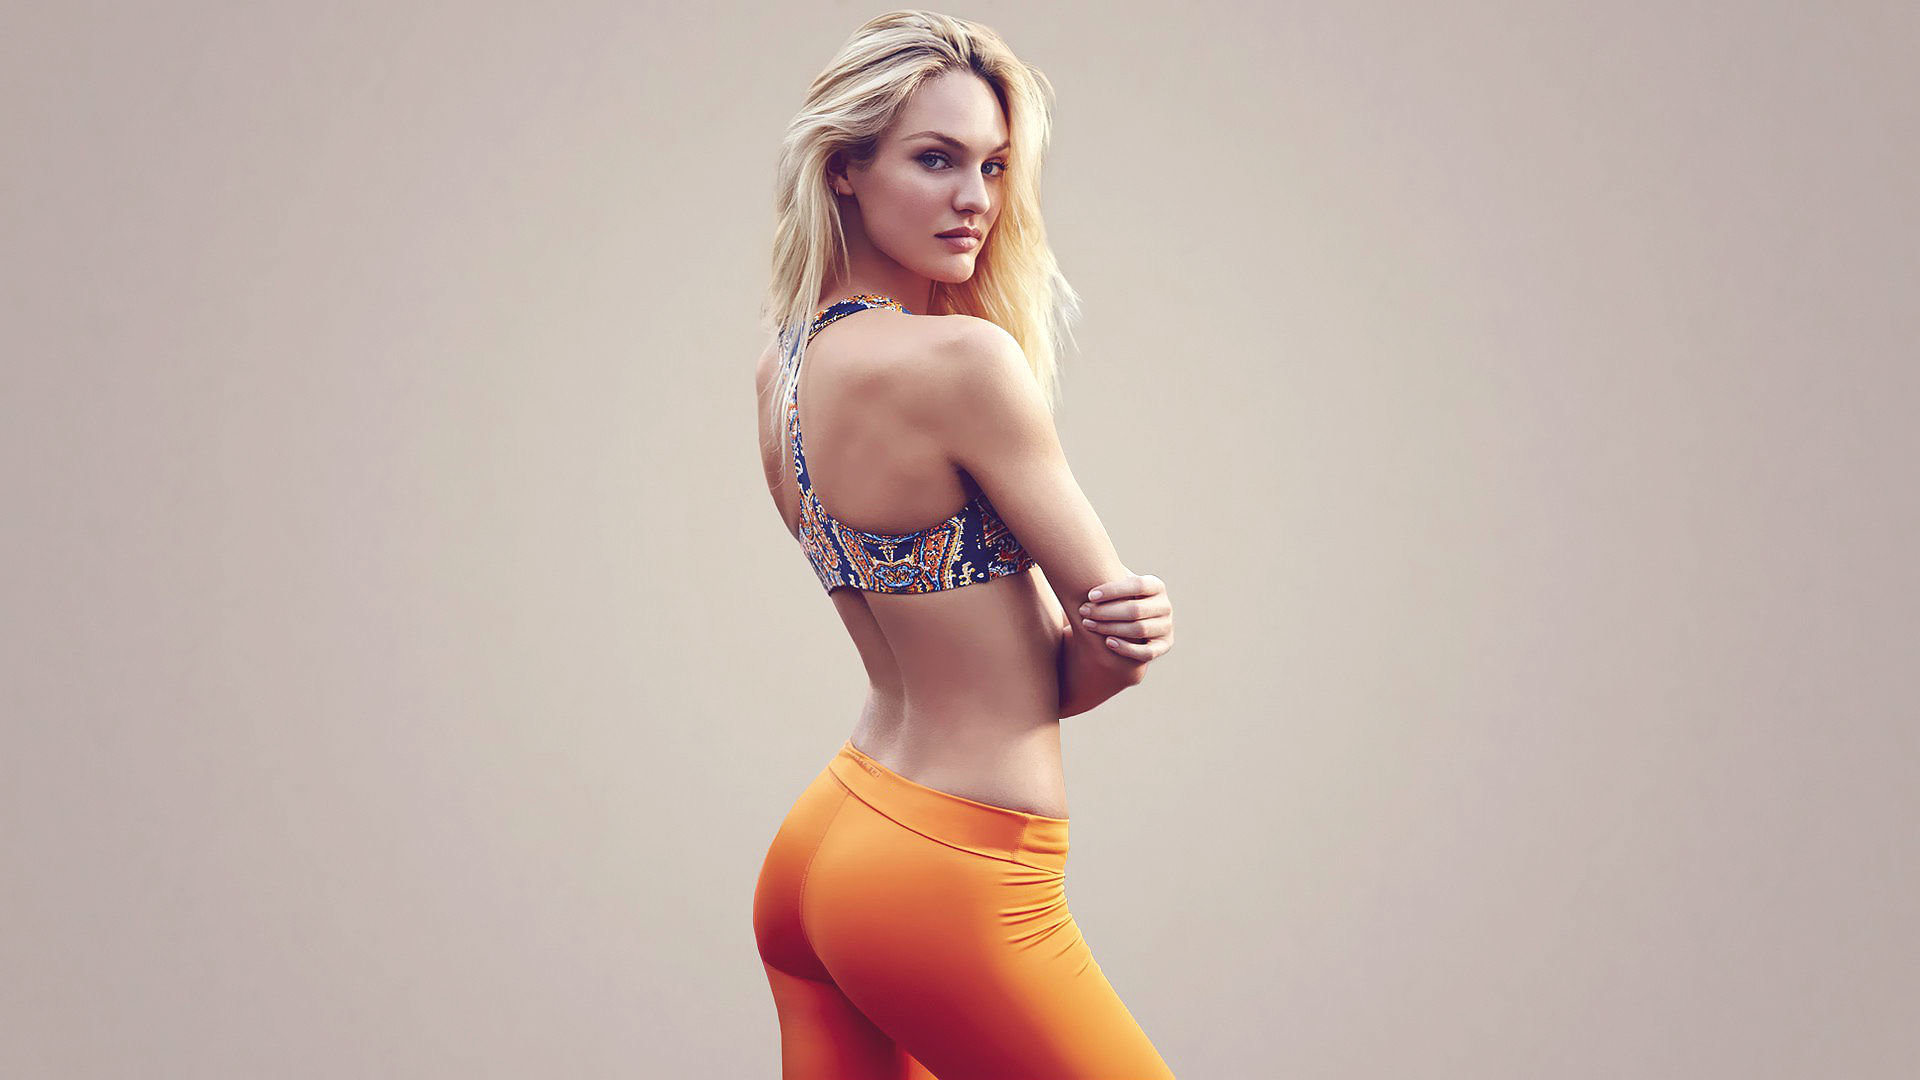 Awesome Candice Swanepoel Free Wallpaper Id342290 For Hd